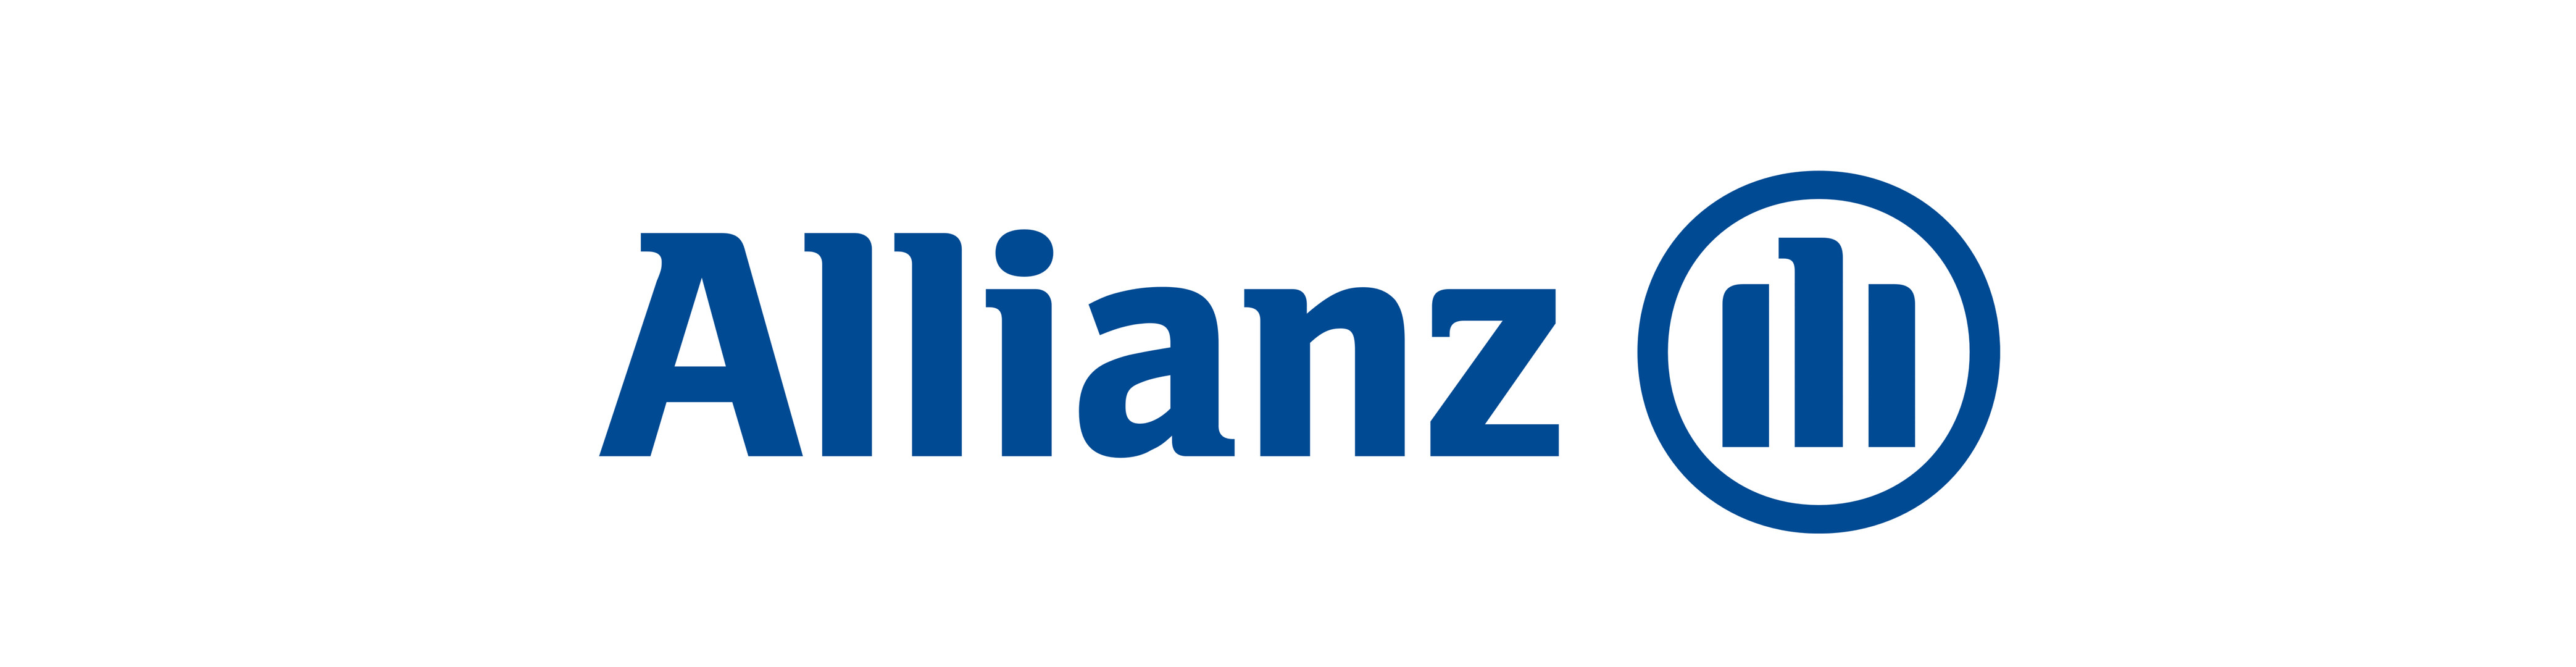 Allianz_logo_logotype.jpg